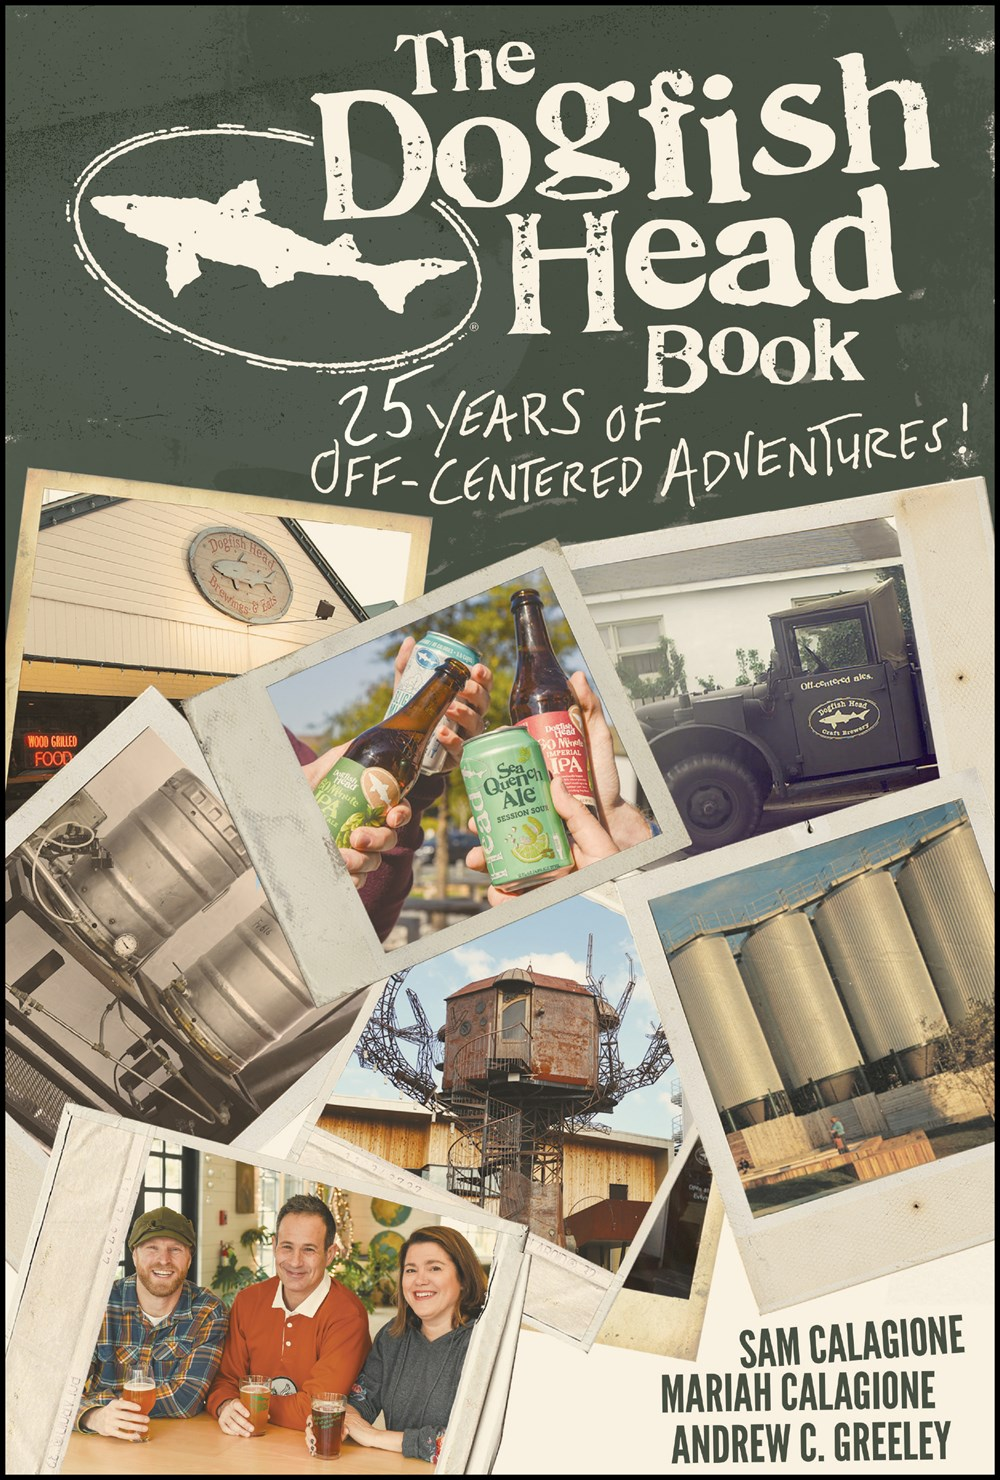 Dogfish Head Book 25 Years of Off-Centered Adventures